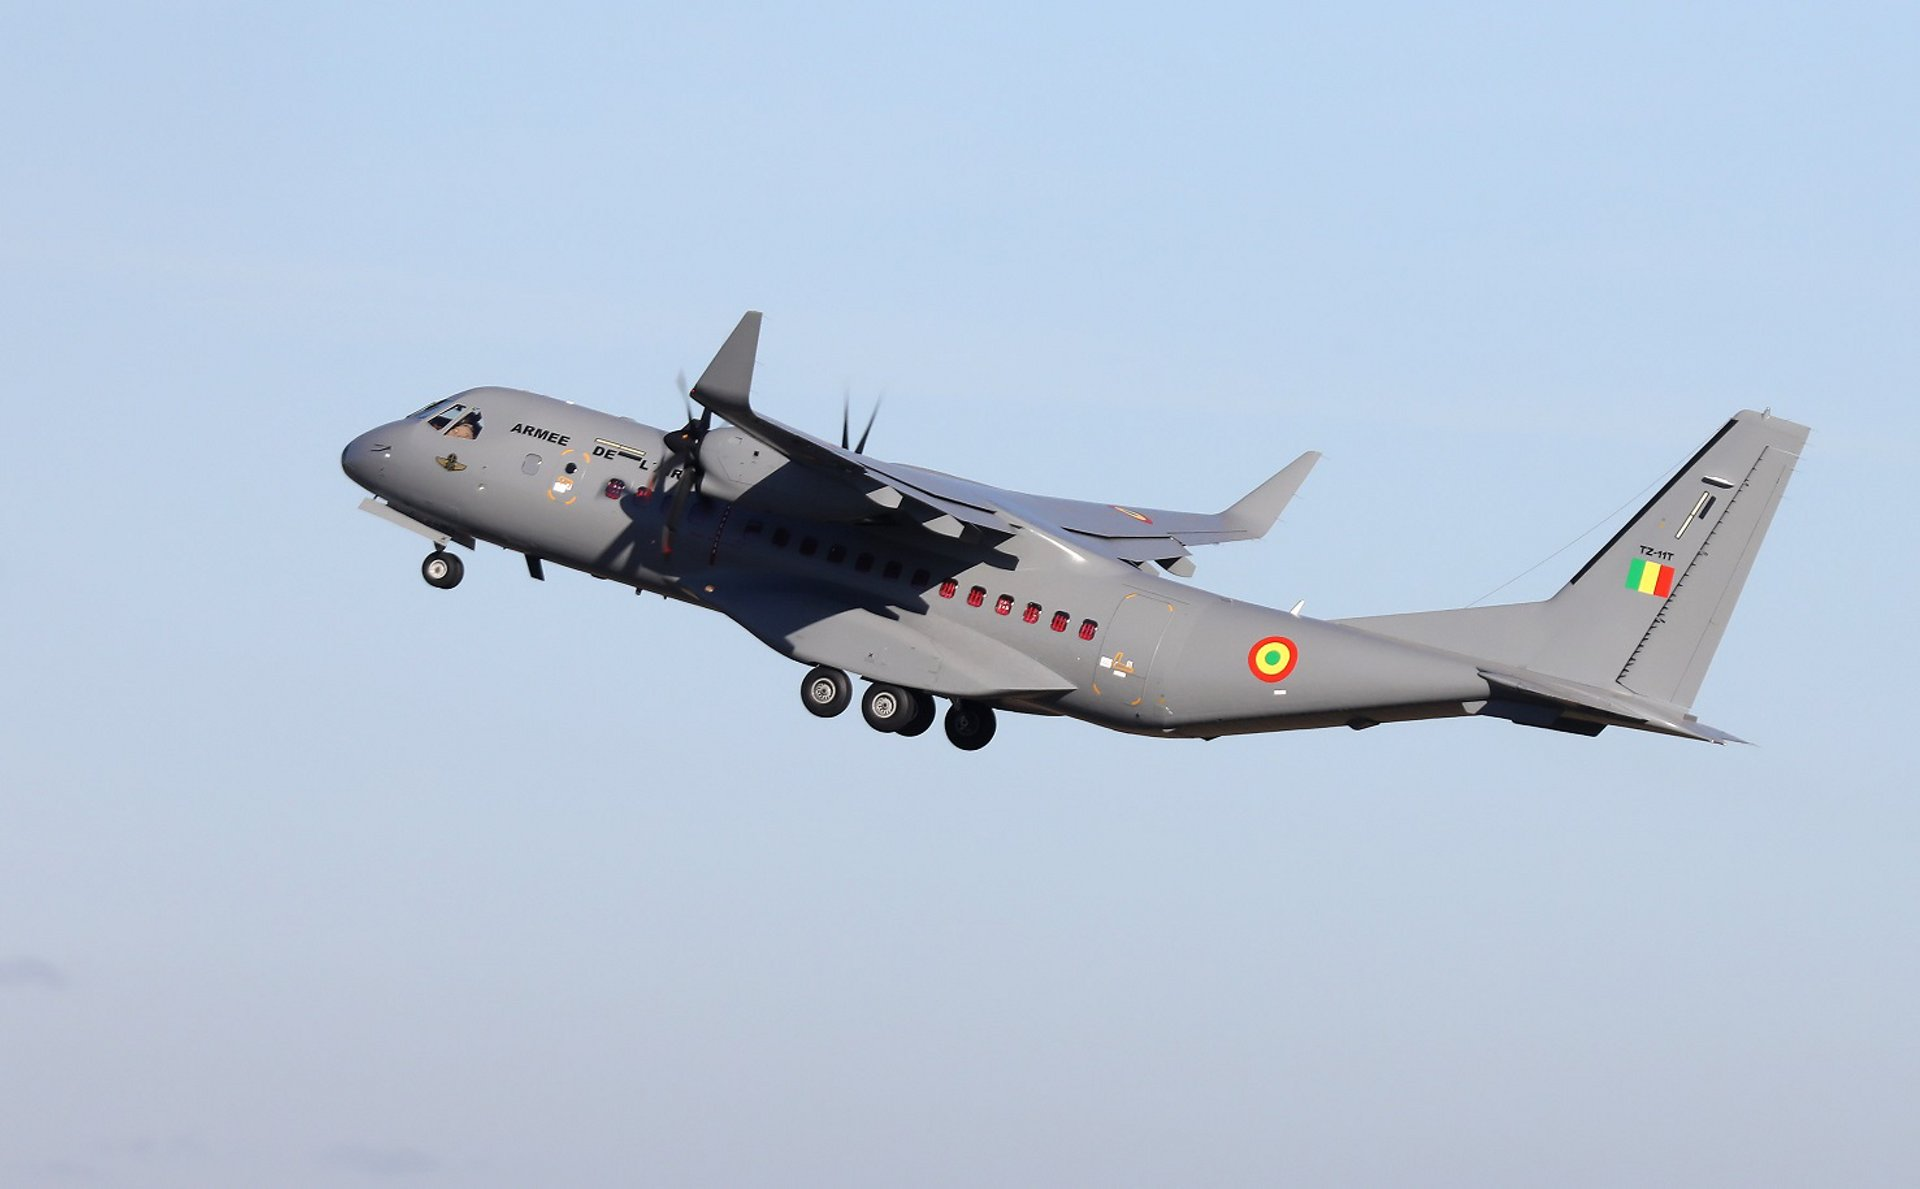 The Ministry of Defence of the Republic of Mali has placed a firm order for an additional Airbus C295 airlifter in the transport configuration. This second aircraft, to be delivered in 2021, will supplement the first C295 already in operation since December 2016 which has already accumulated 1,770 flight hours and transported more than 38,000 passengers and 900 tonnes of cargo in less than four years of operations.